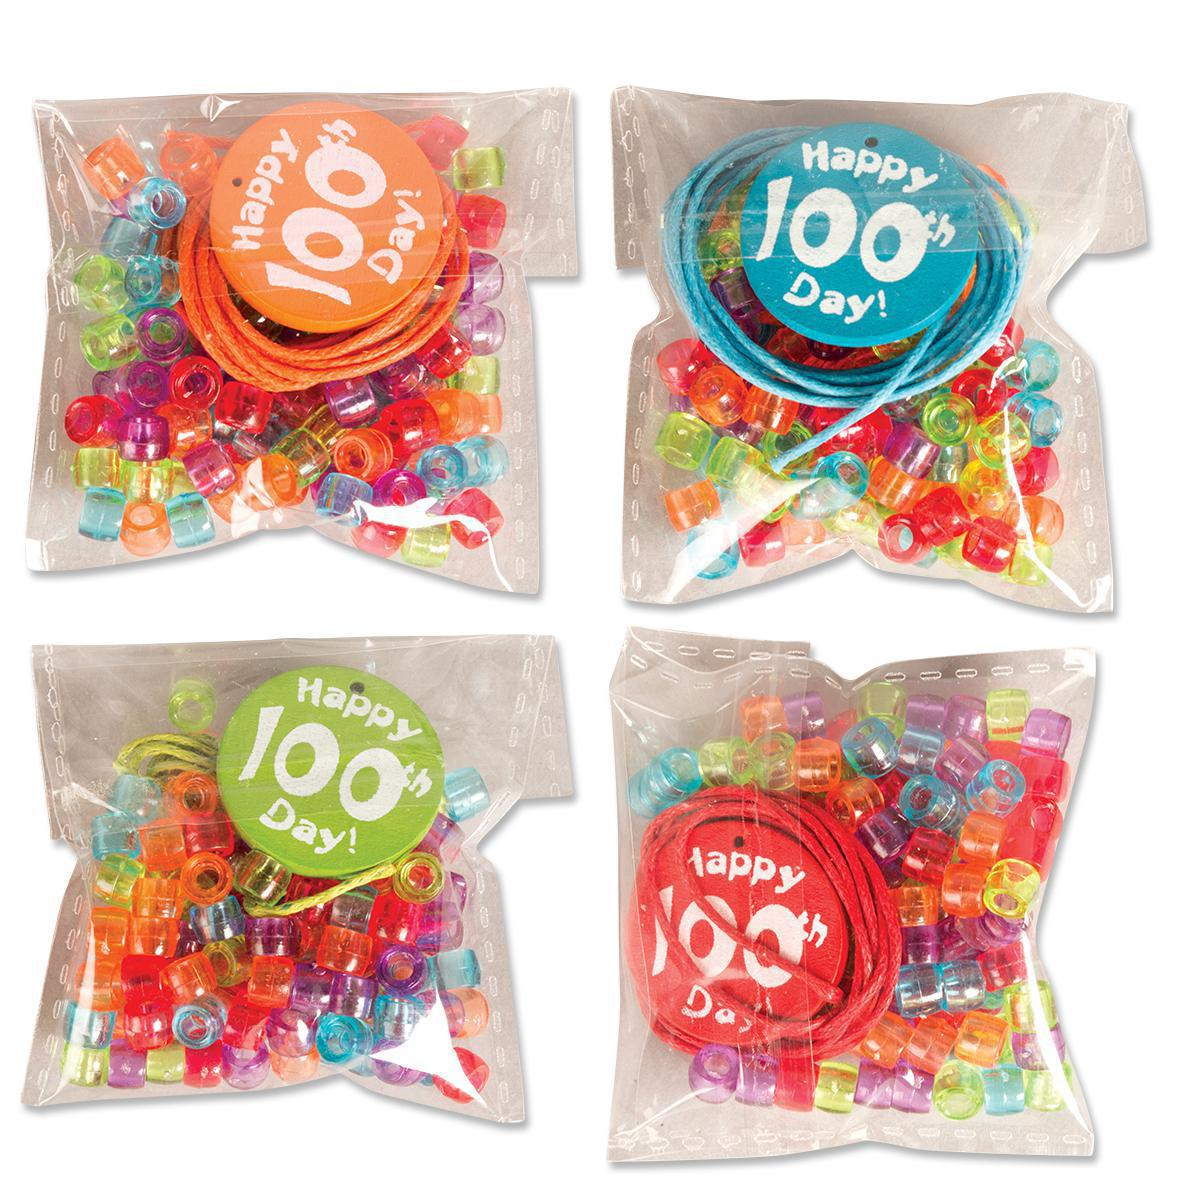 100 Days Bead Kit 12-Pack